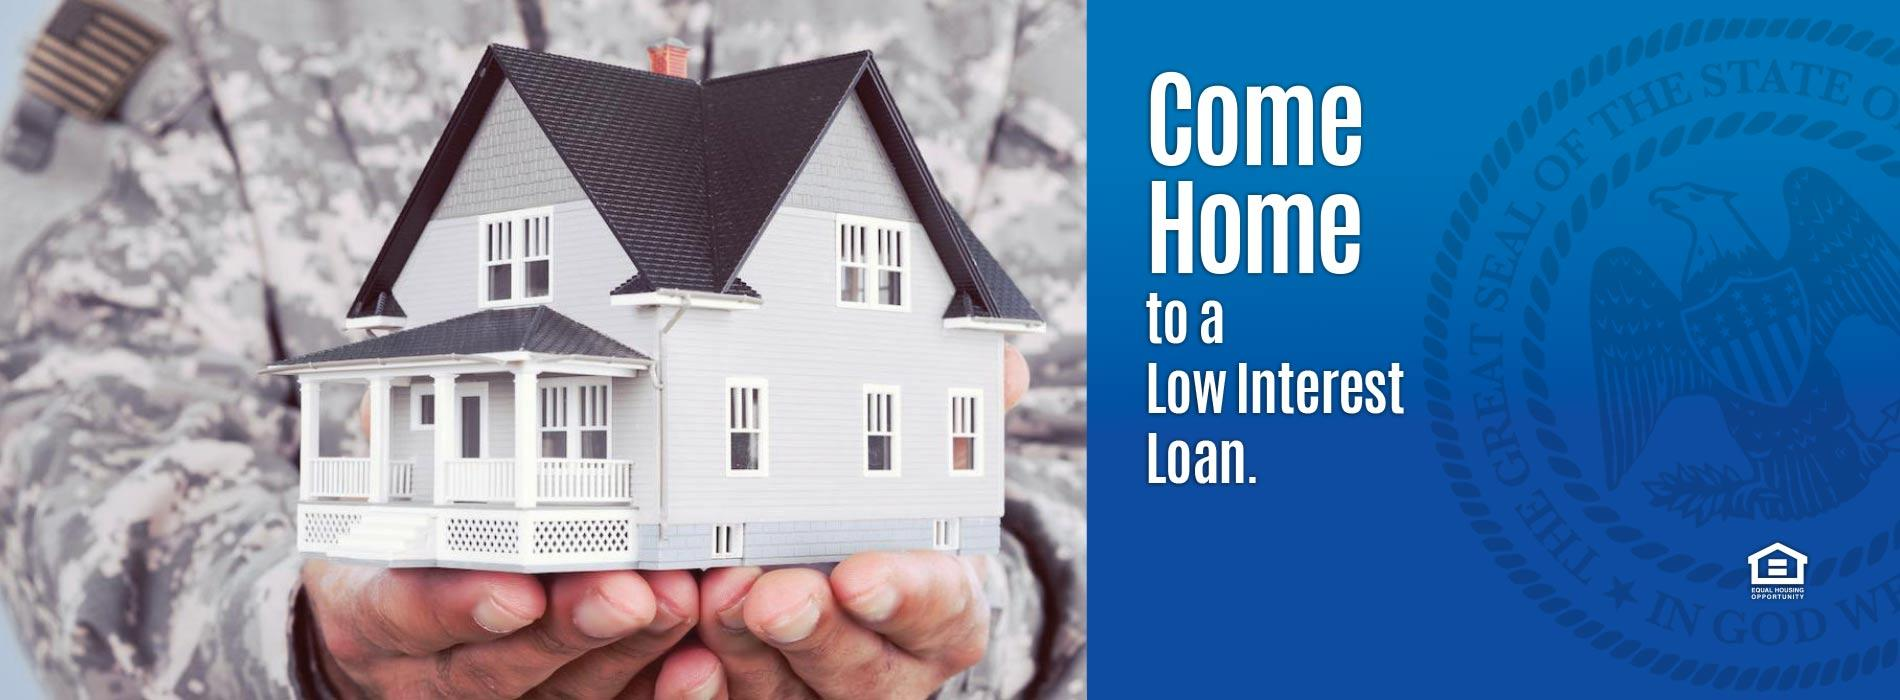 Come Home to a Low Interest Loan.